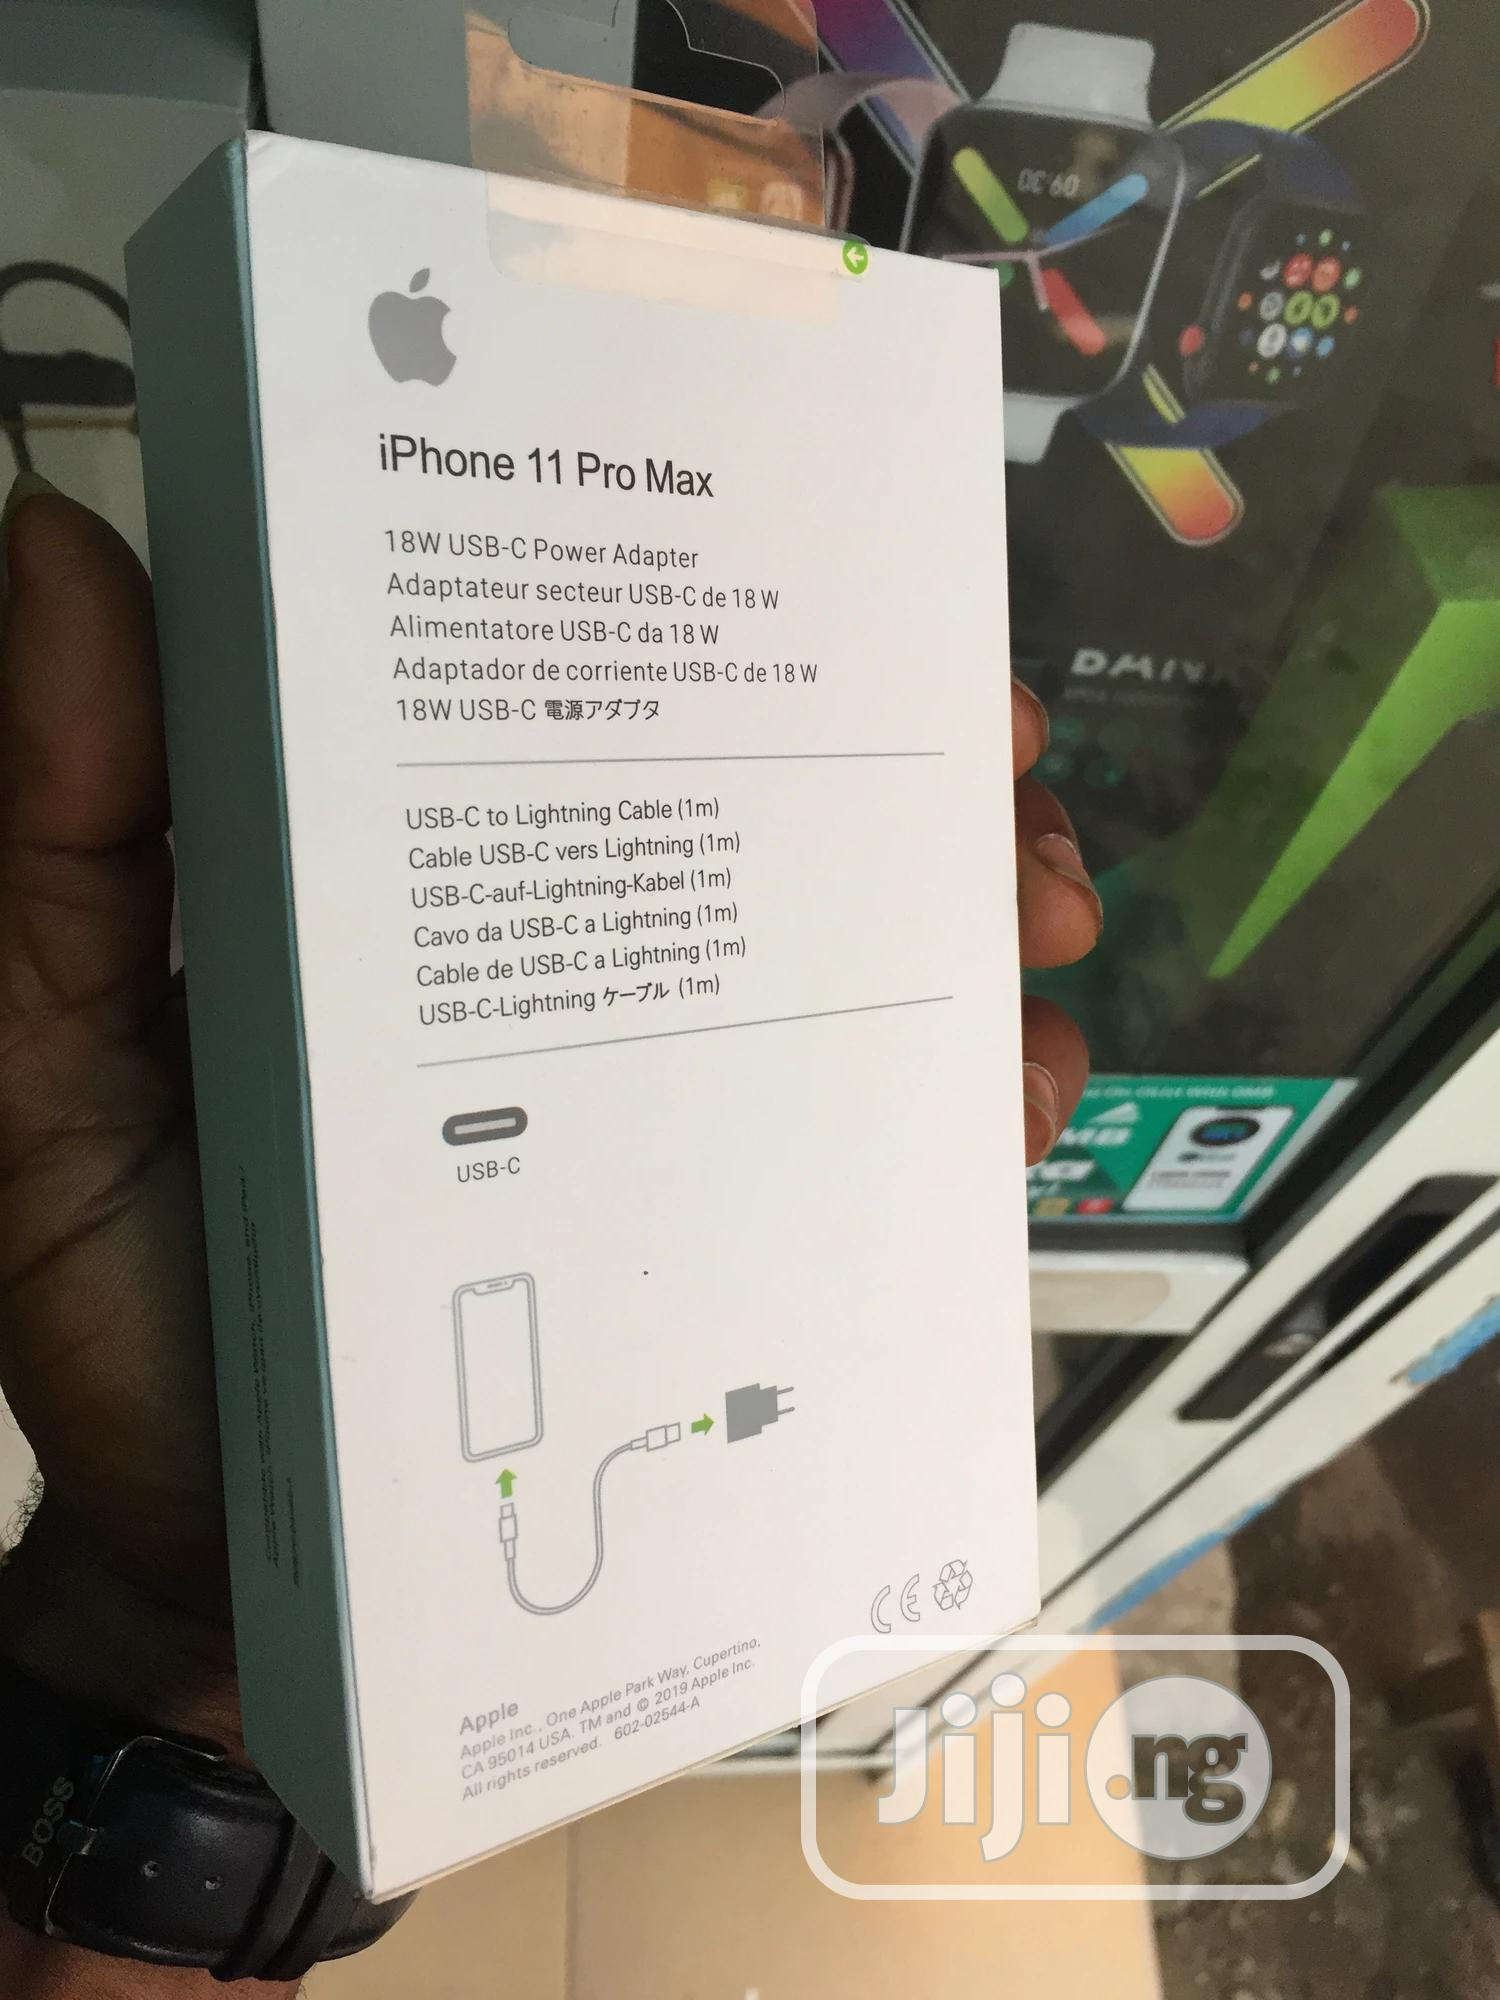 iPhone 11 Pro MAX Charger 18W USB T-C Power Adapter | Accessories for Mobile Phones & Tablets for sale in Ikeja, Lagos State, Nigeria